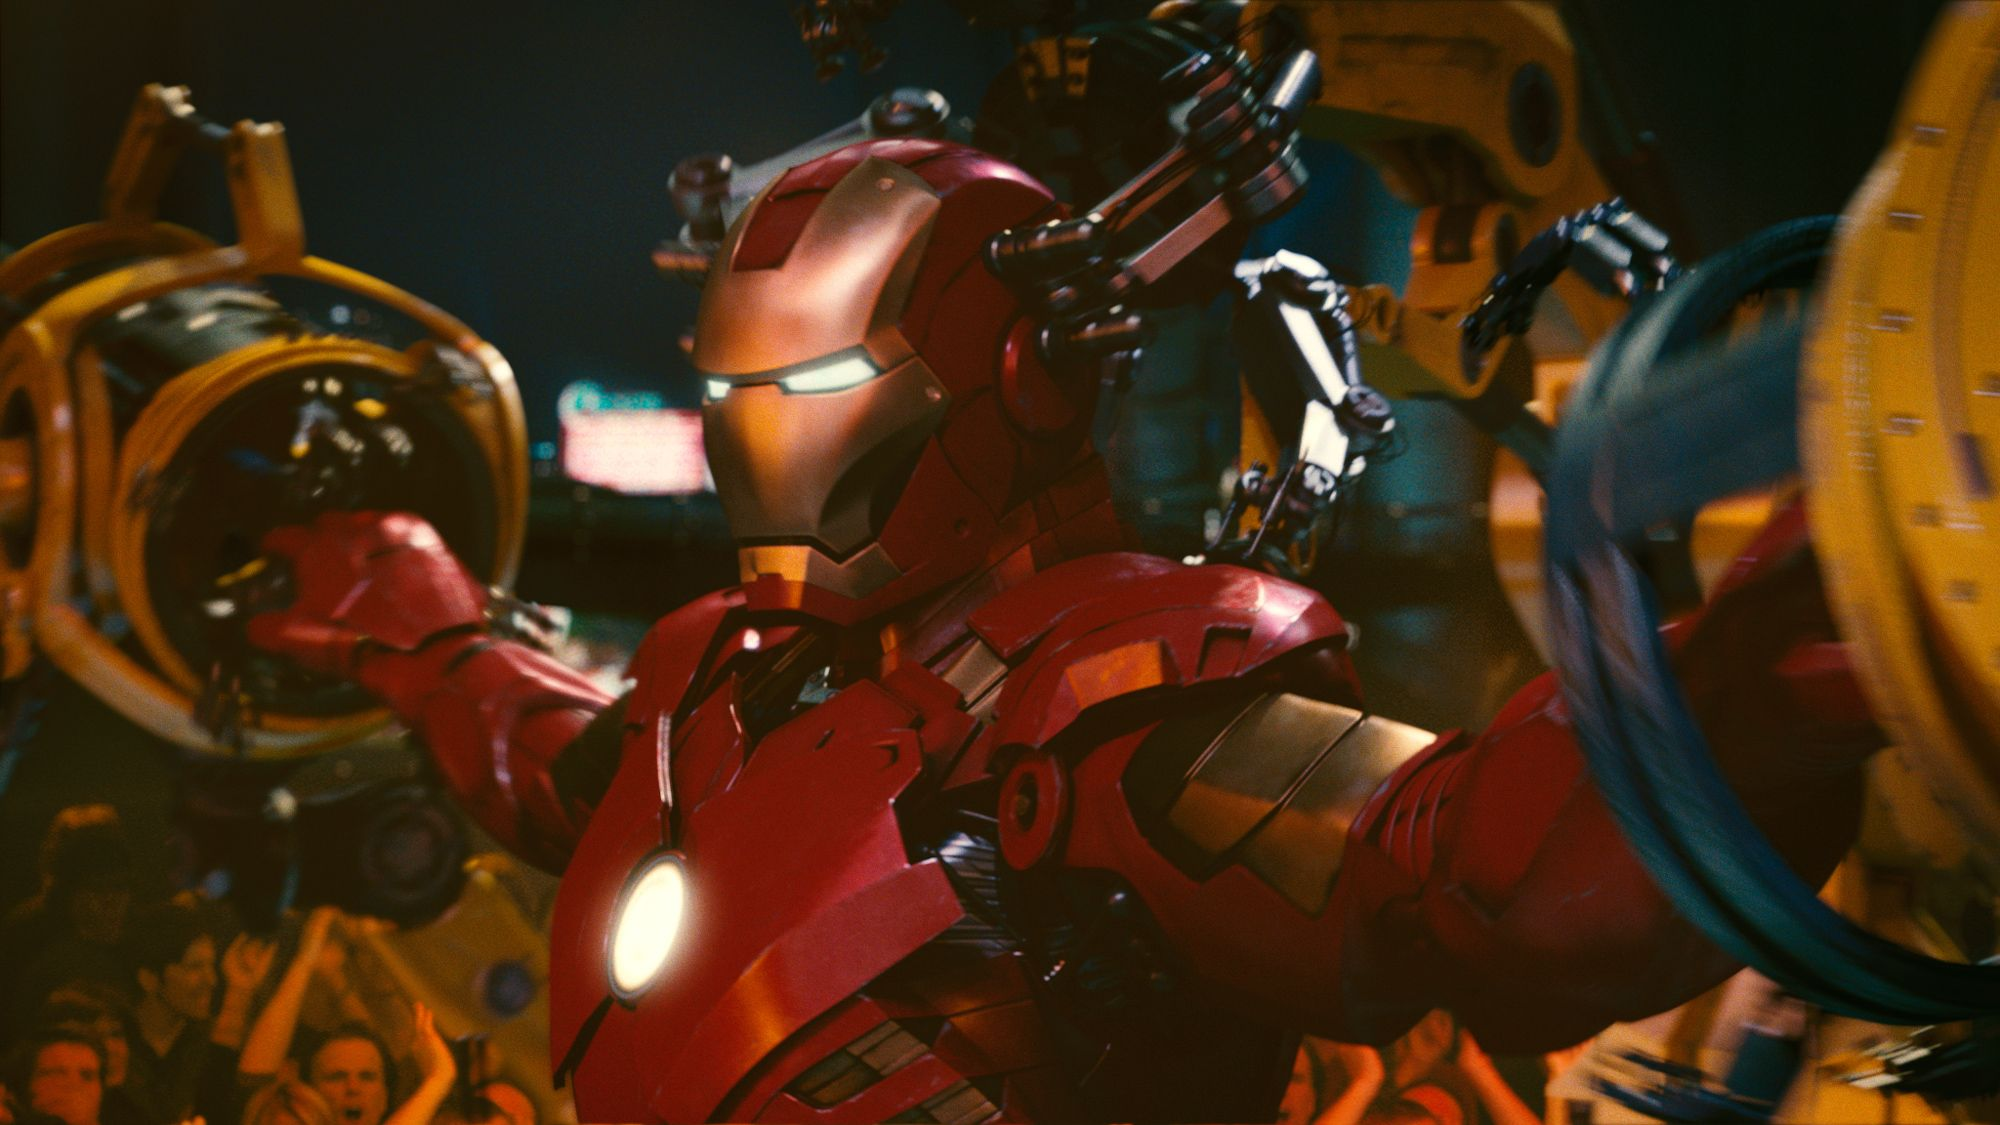 10 New Iron Man 2 Images In High Resolution Collider Collider